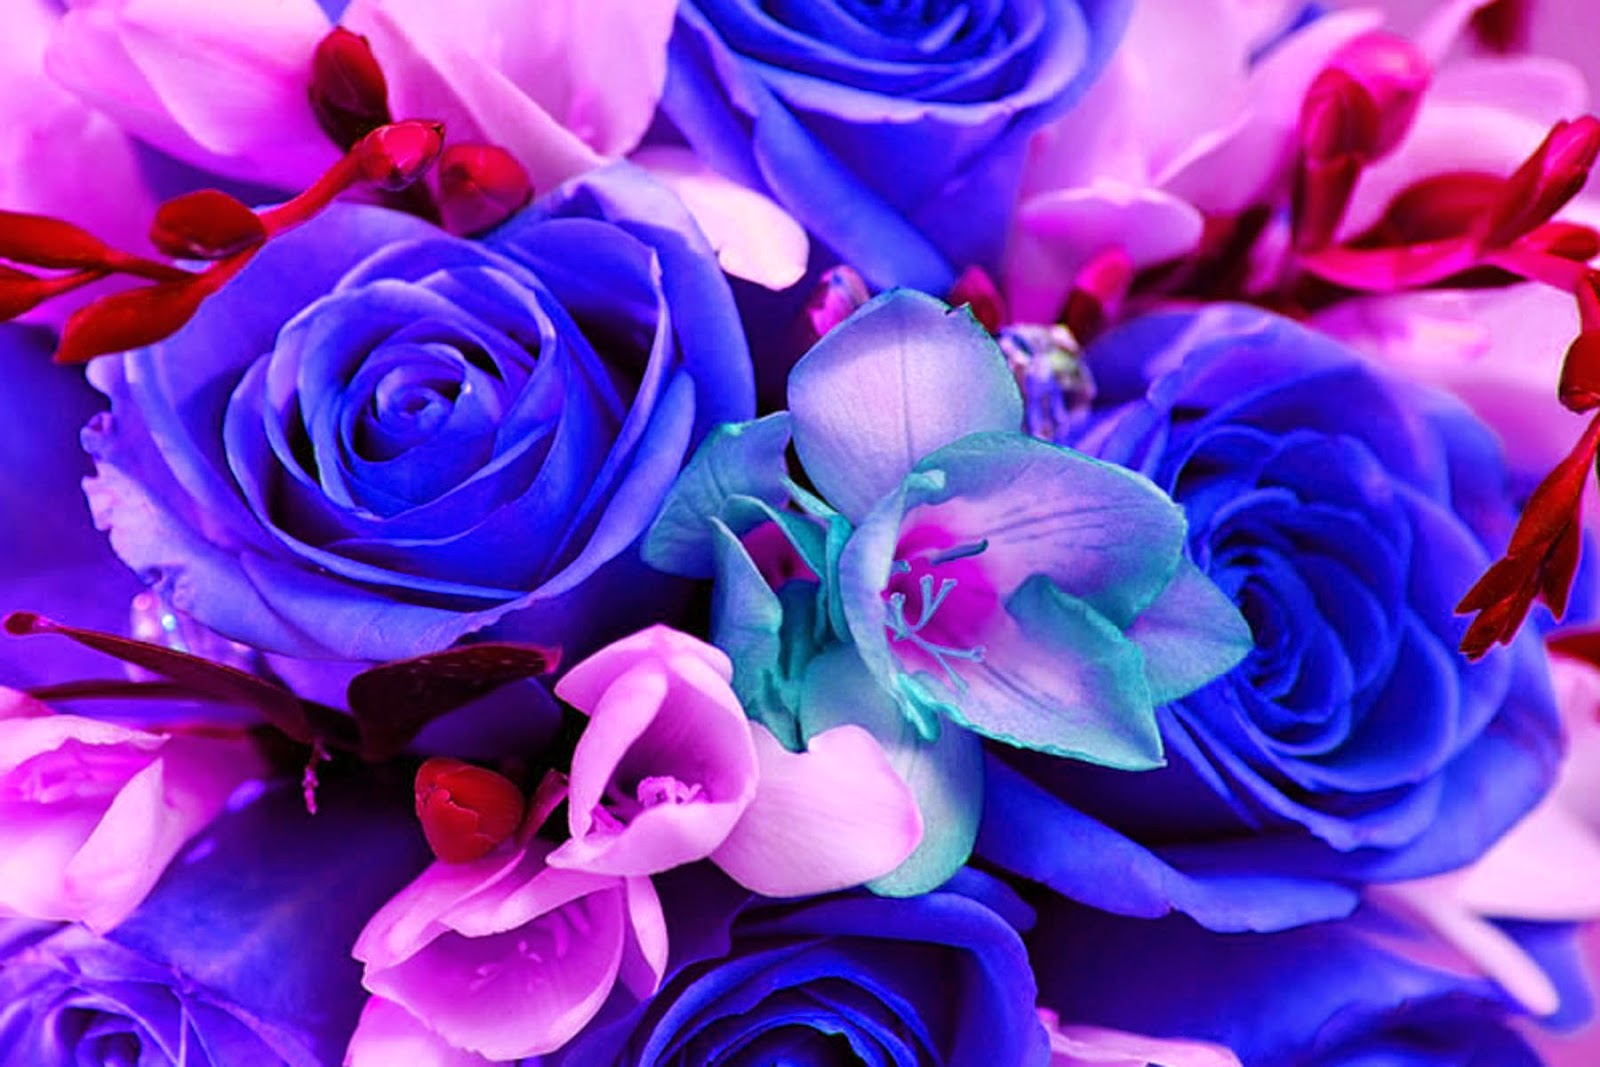 Doodlecraft: Colorful Bouquet of Flowers Wallpaper Background!